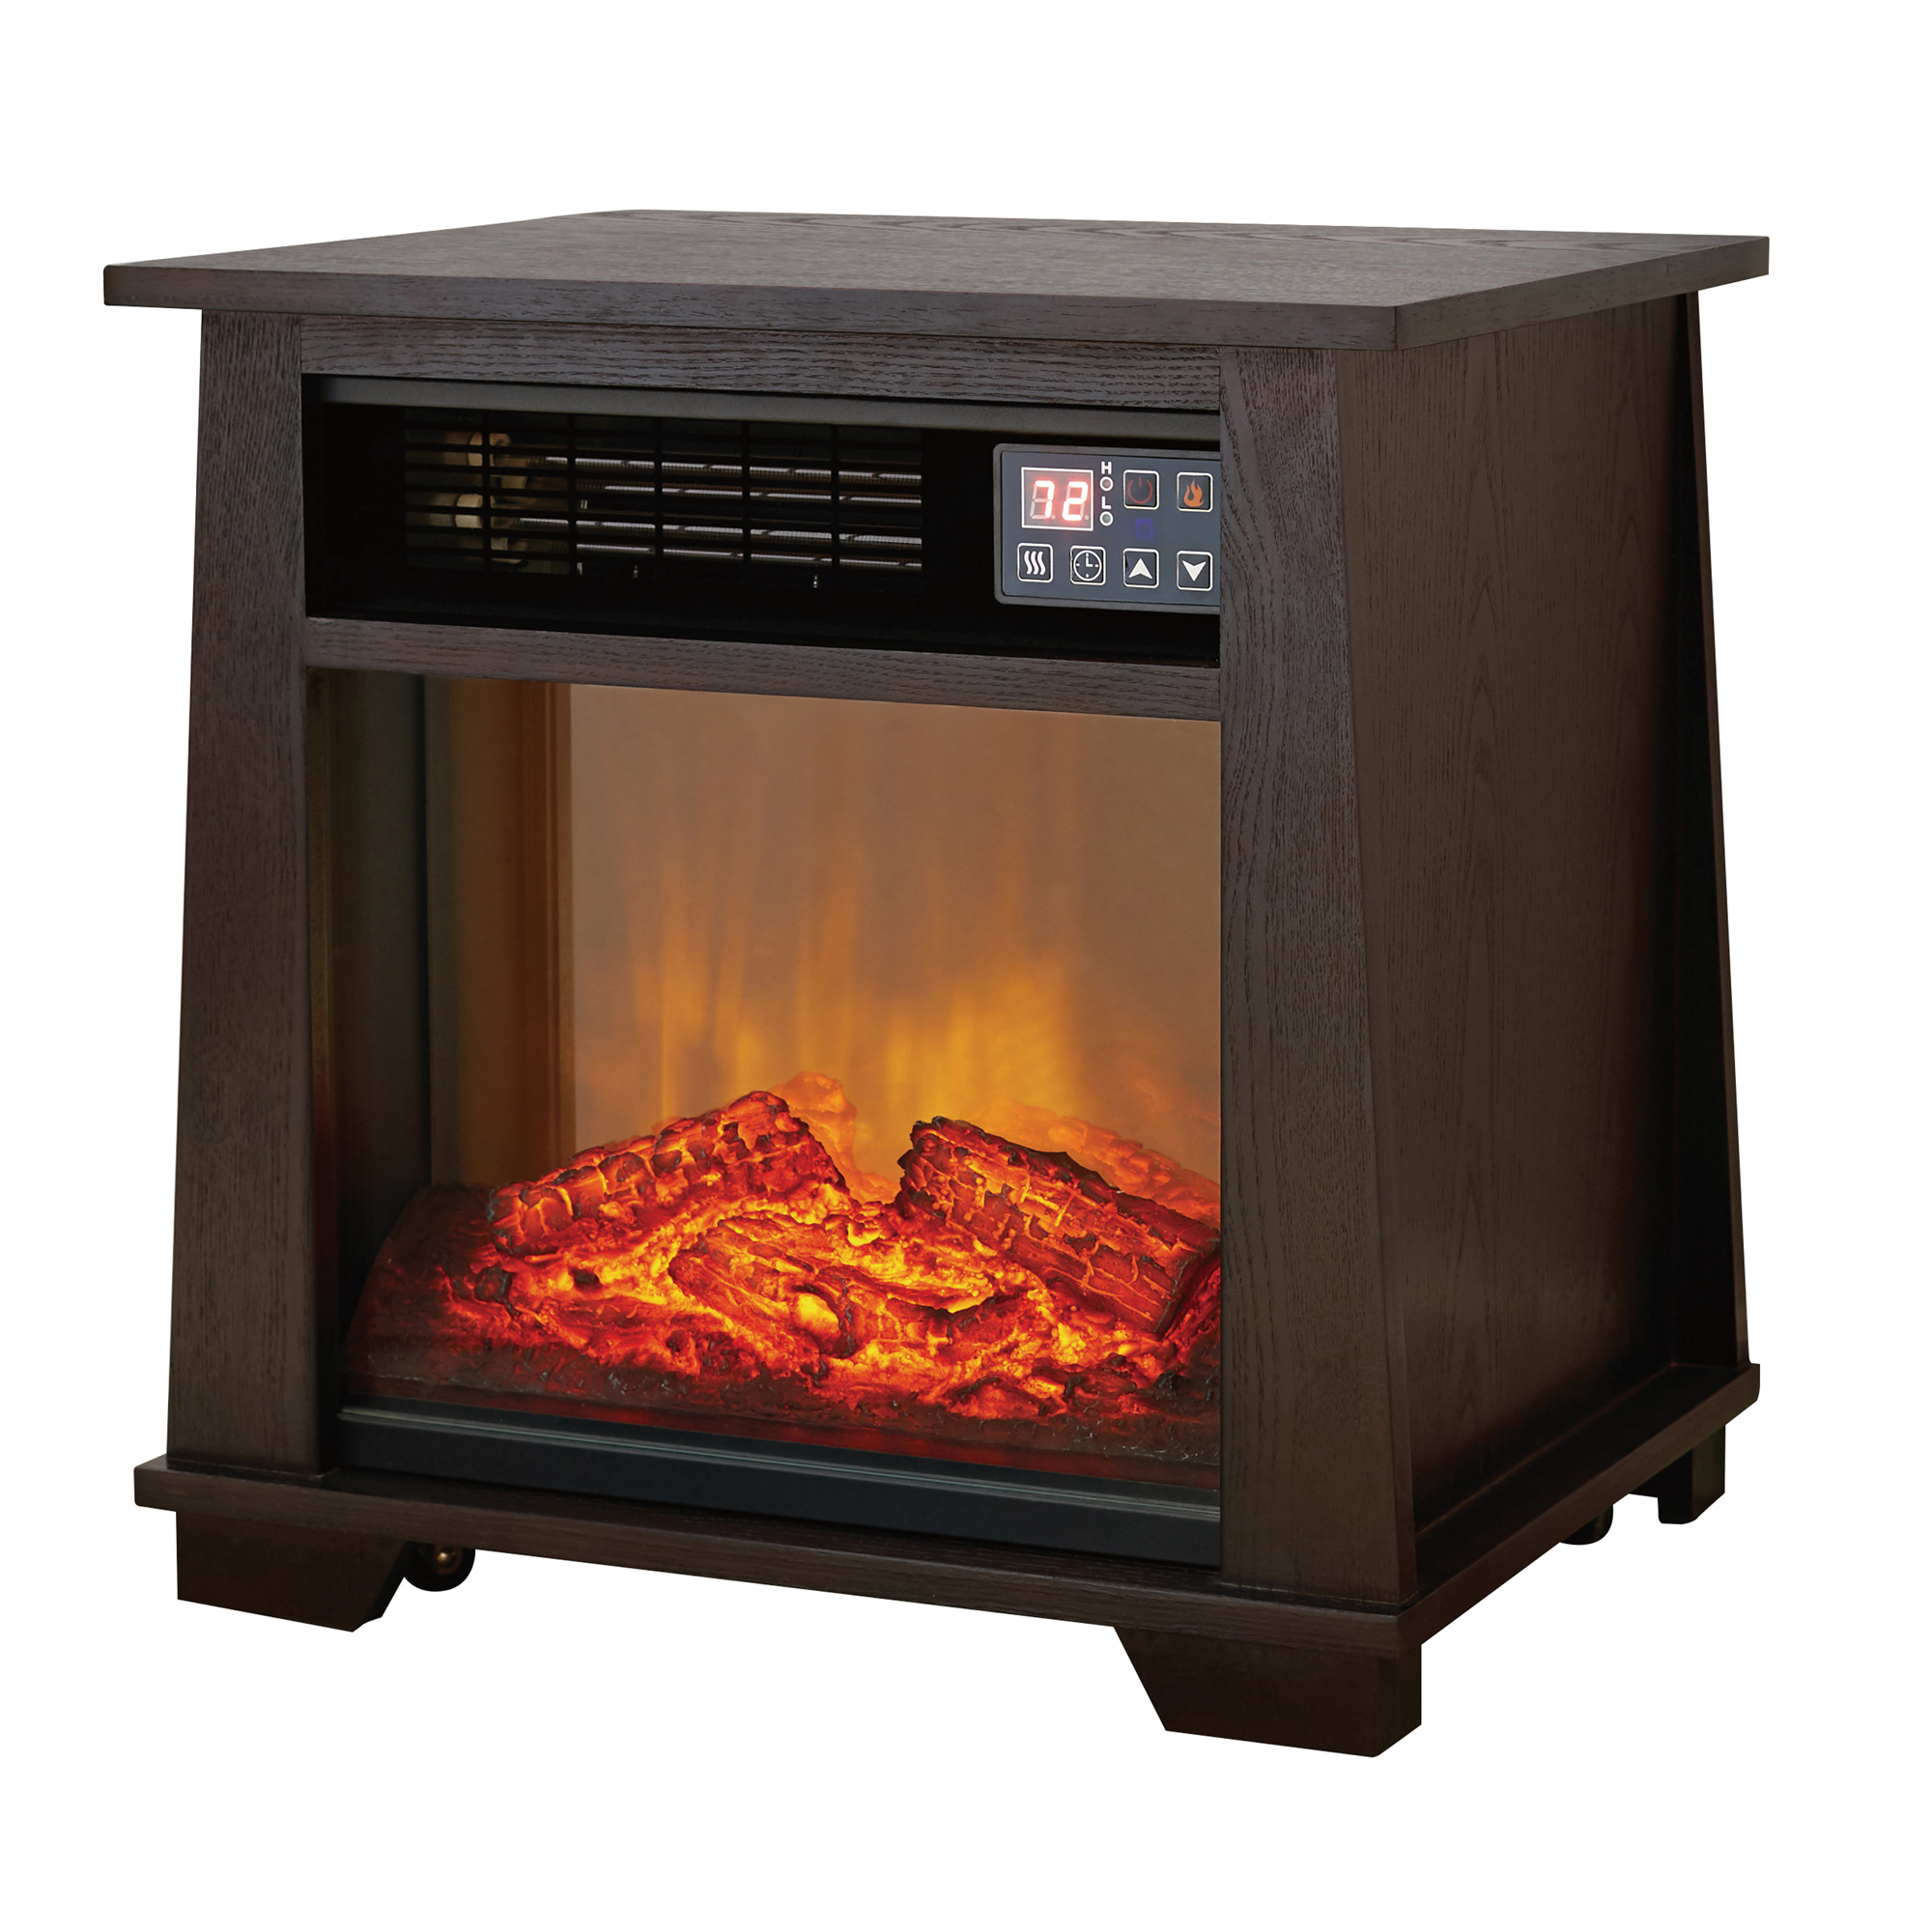 Mainstays Infrared Electric Space Heater, dark oak by Ningbo Konwin Electrical Appliance Co.,Ltd